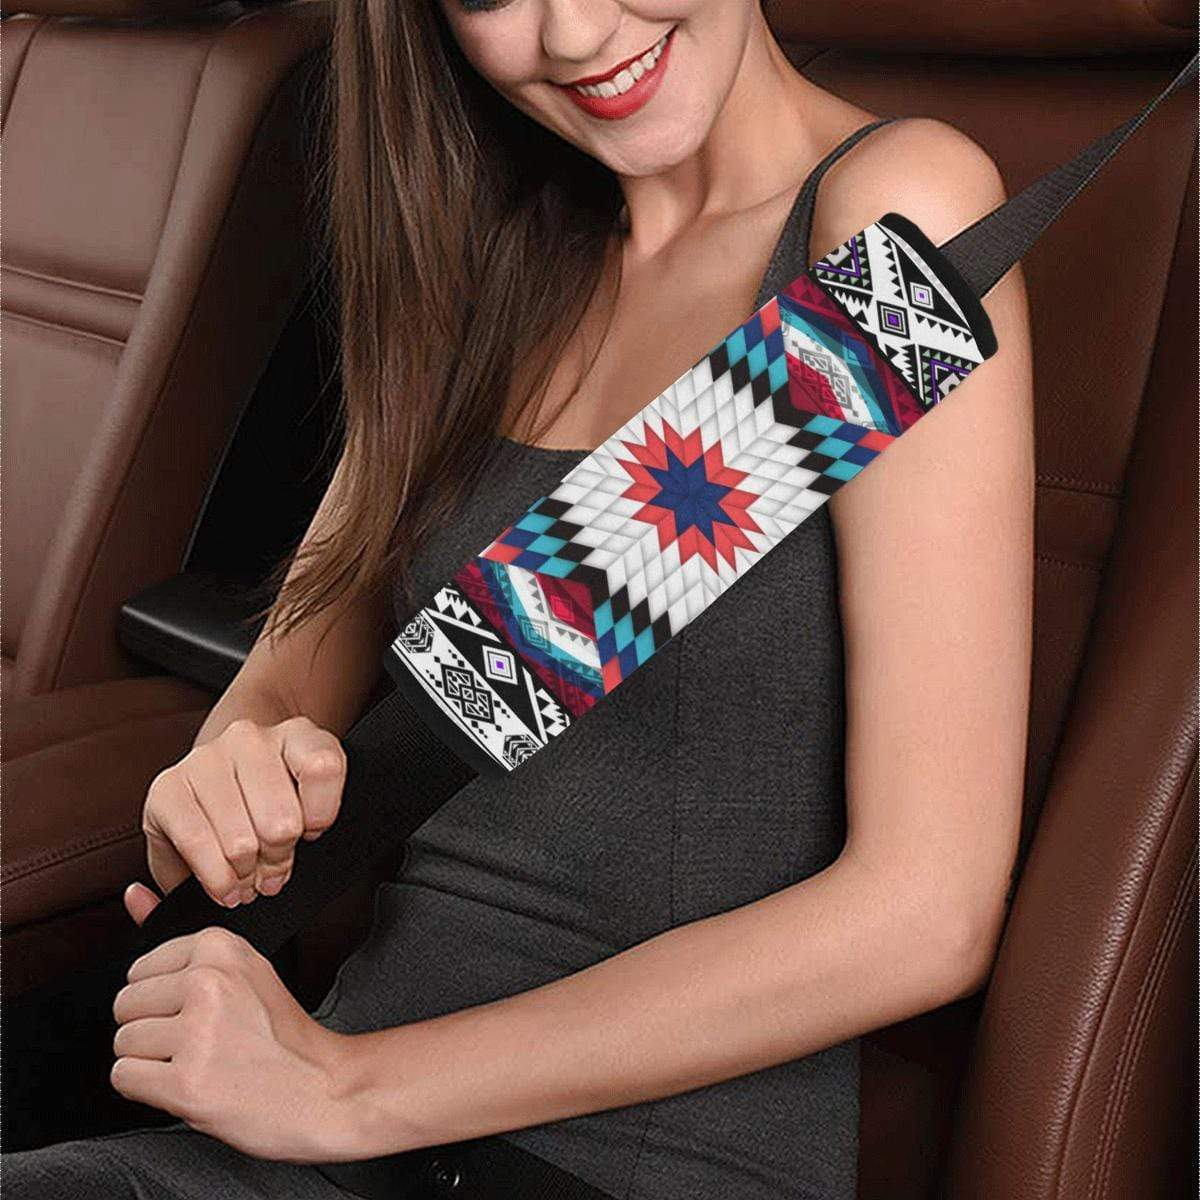 Independence Cove Car Seat Belt Cover 7''x12.6'' Car Seat Belt Cover 7''x12.6'' e-joyer